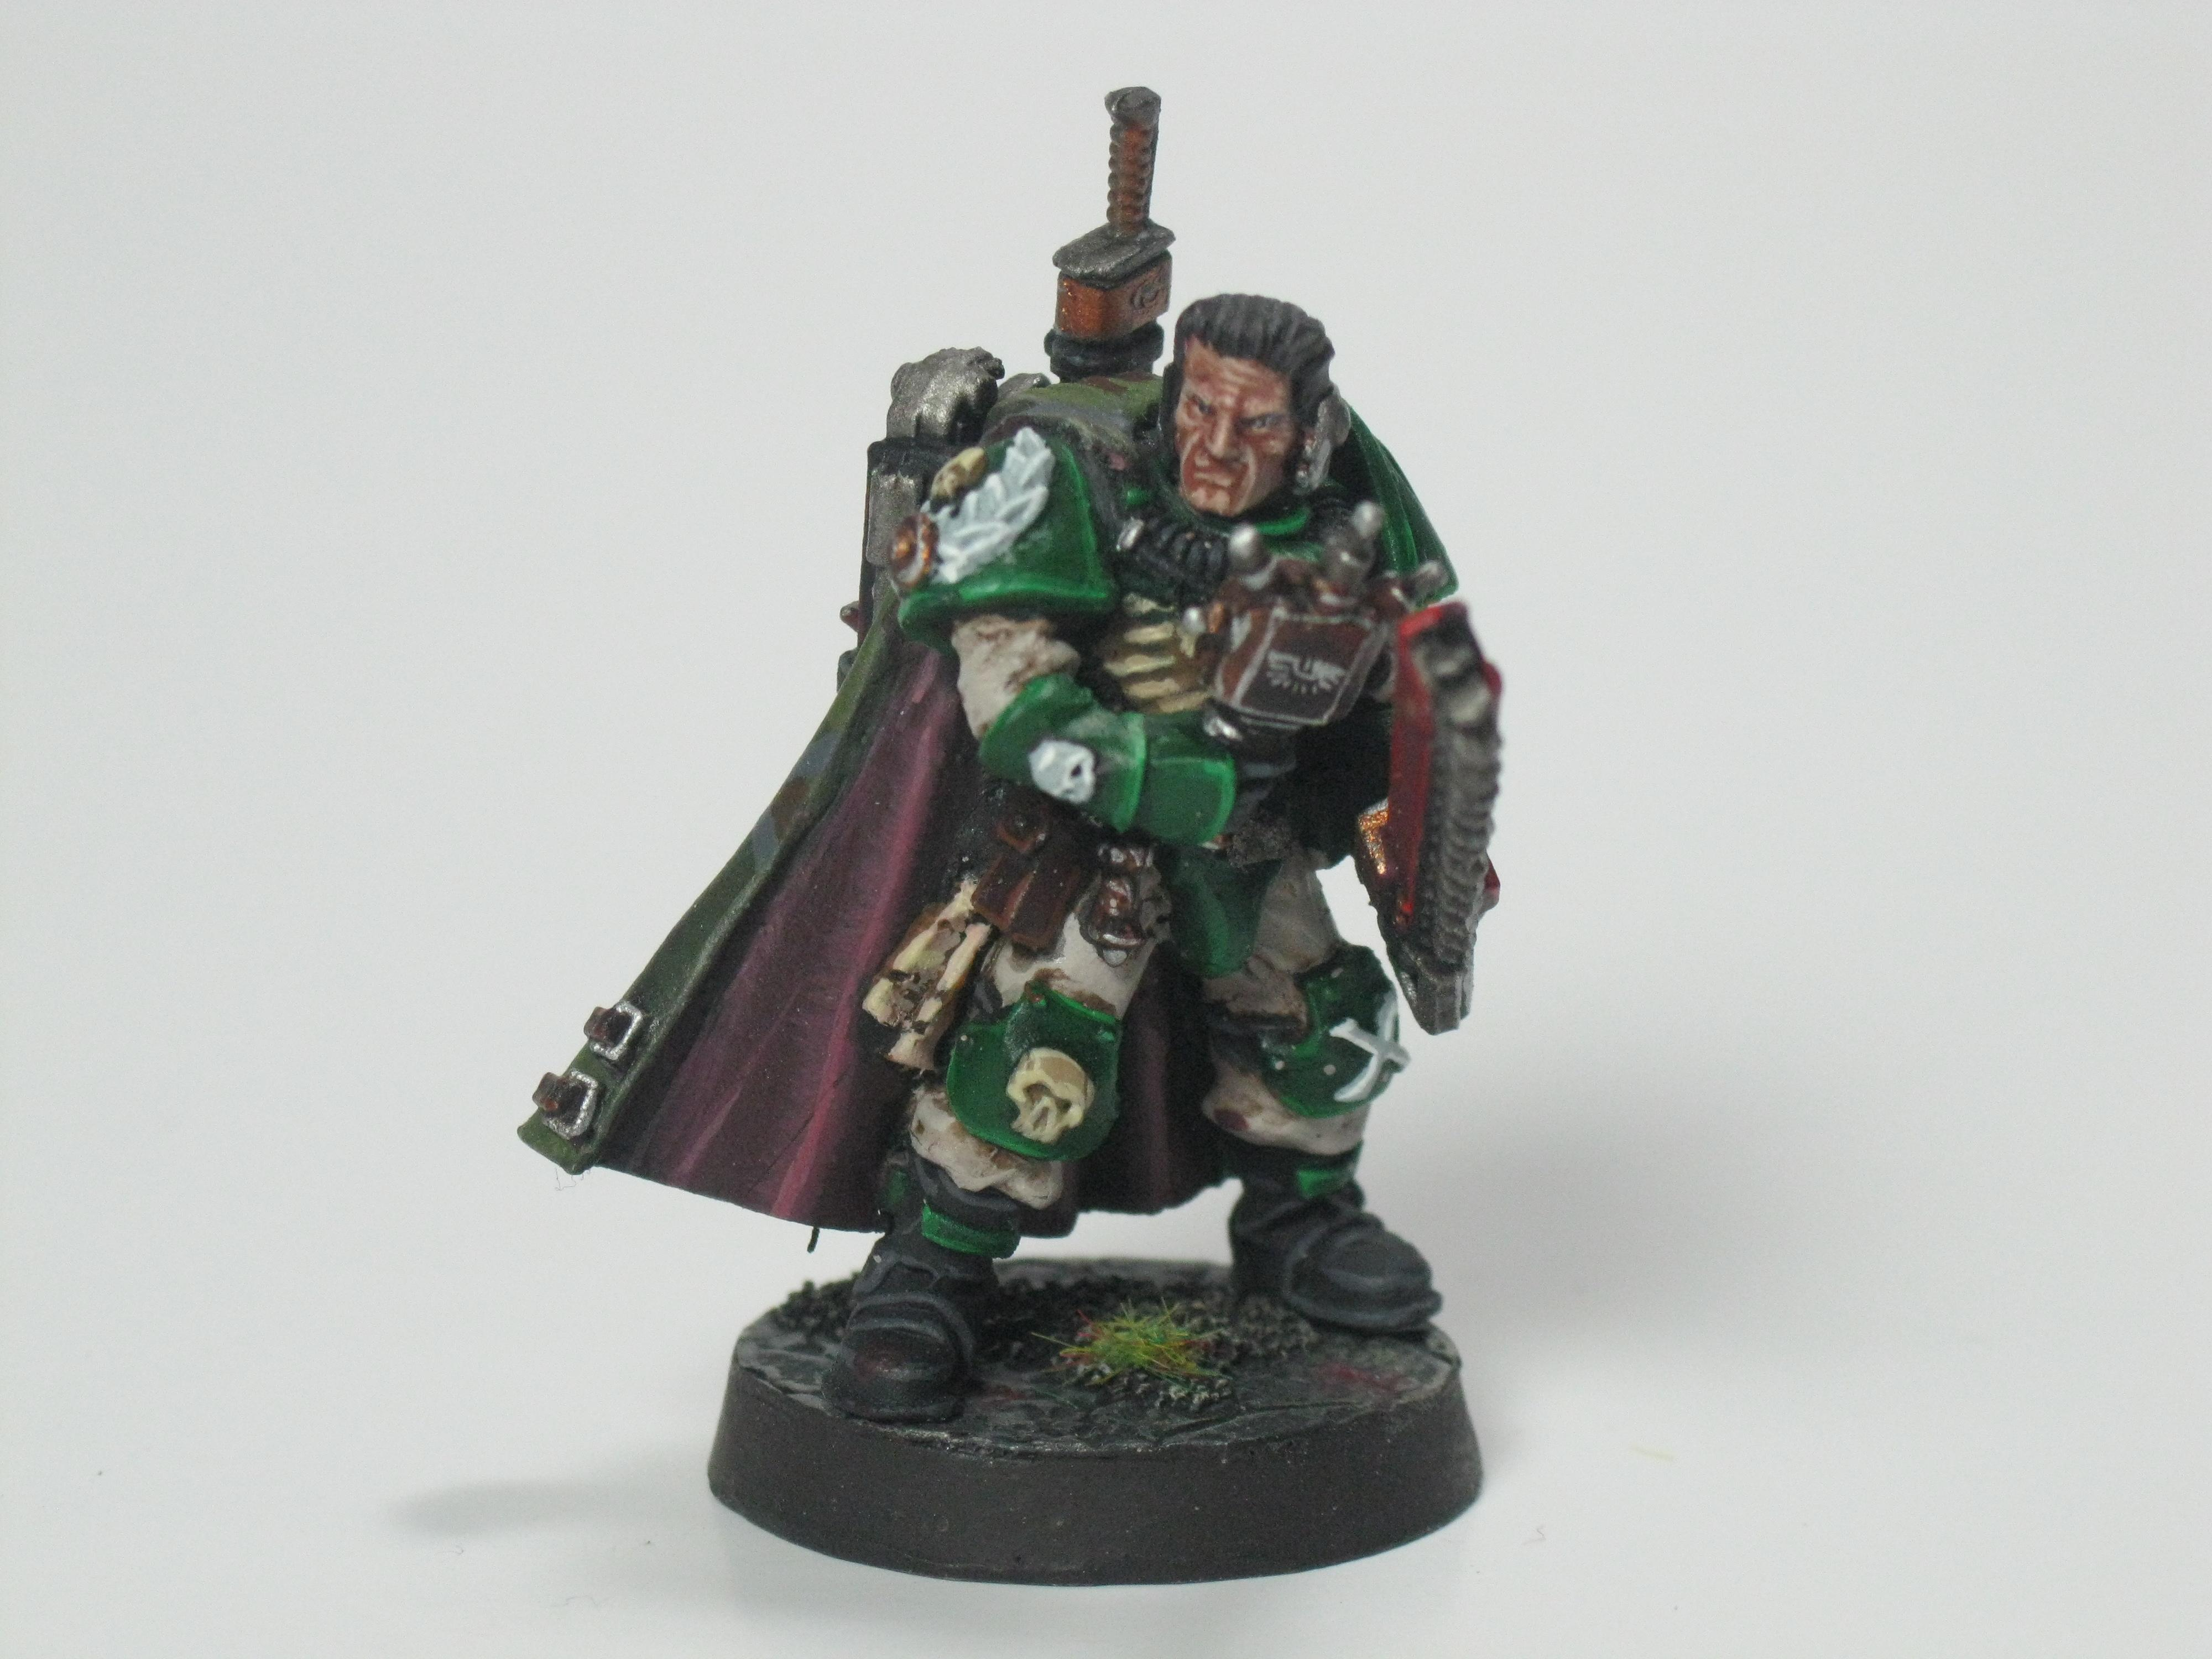 Conversion, Dark Angels, Scouts, Sergeant Naaman, Snipers, Space Marines, Telion